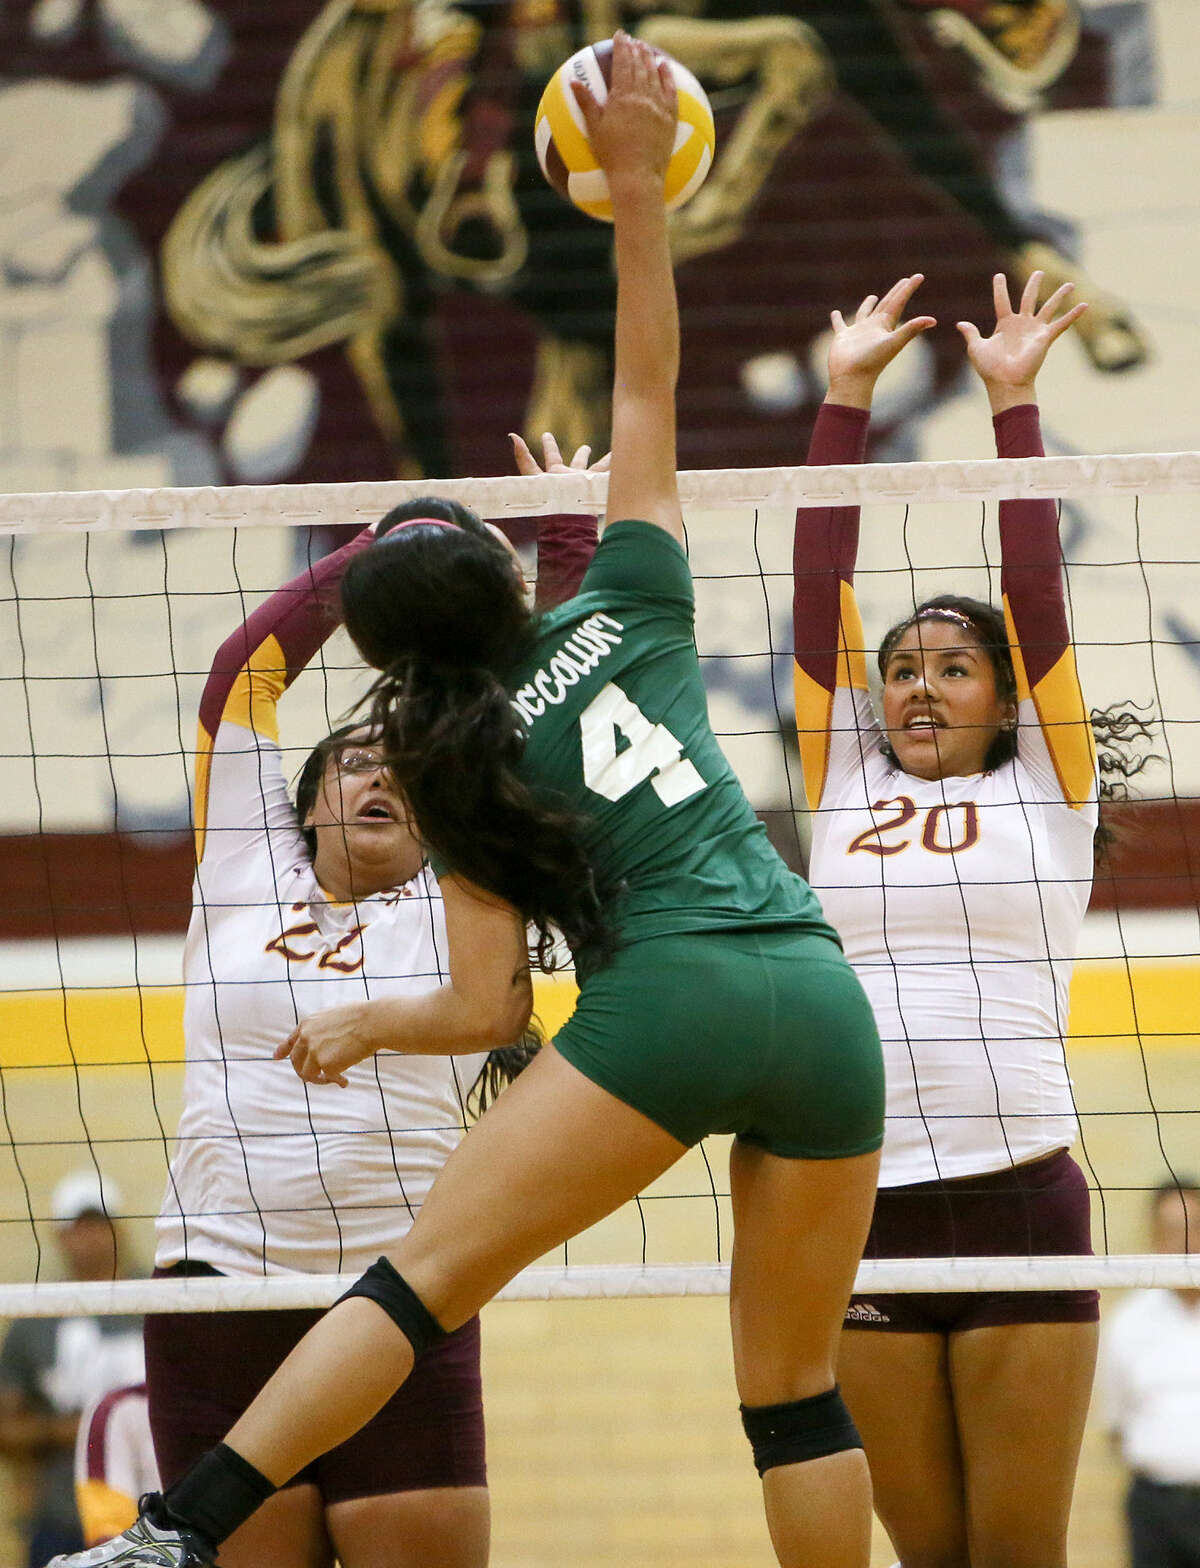 Harlandale's Valeria Stokes, right, and Lizette Pedroza try to block a shot by McCollum's Neyda Sanchez during their match at Harlandale on Oct. 28. McCollum beat Harlandale in four sets, wrapping up the District 28-5A with a perfect 16-0 slate.